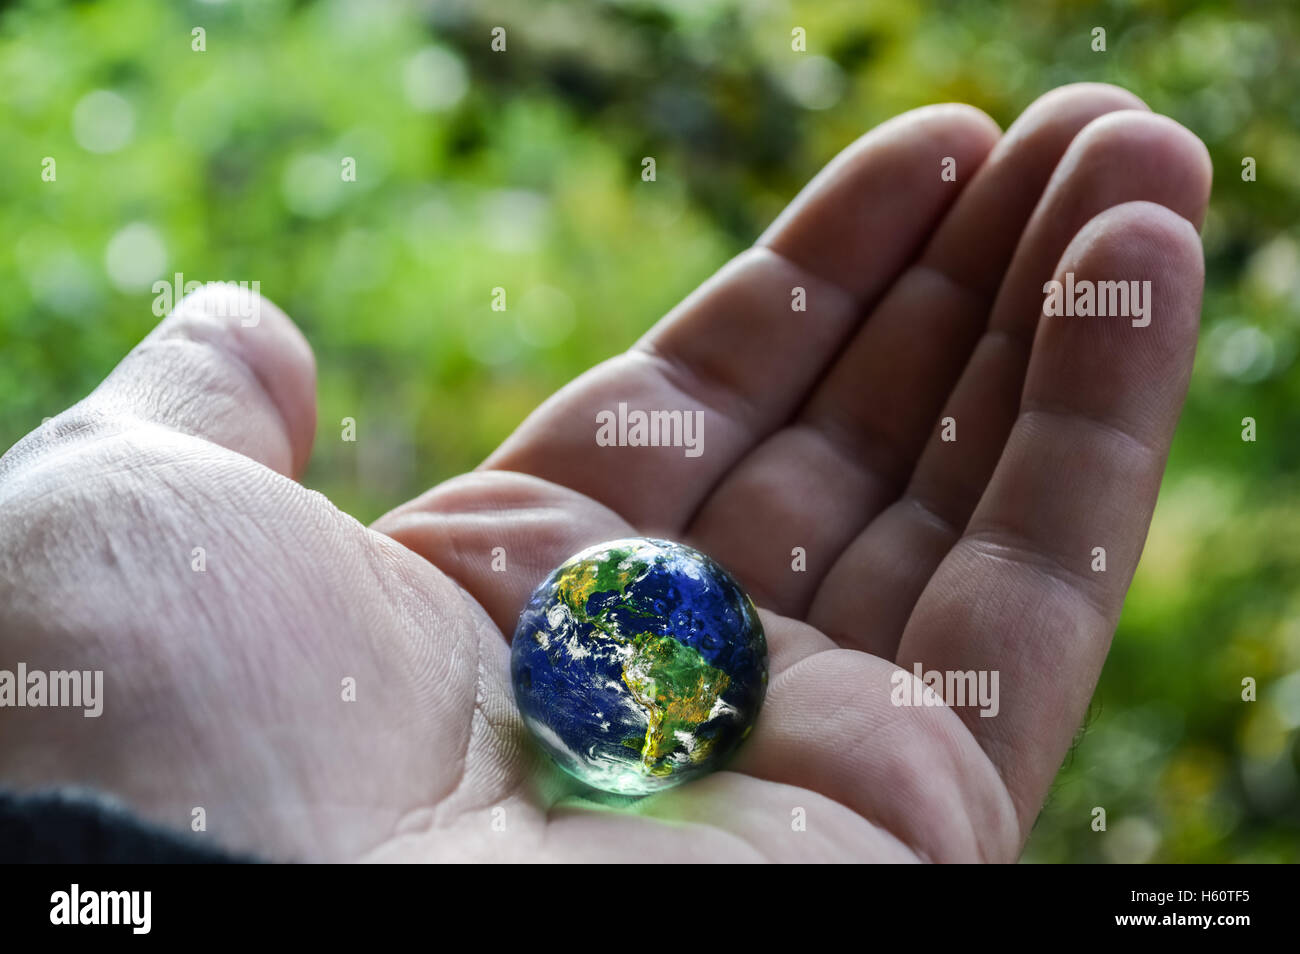 human hand holding planet earth - Stock Image